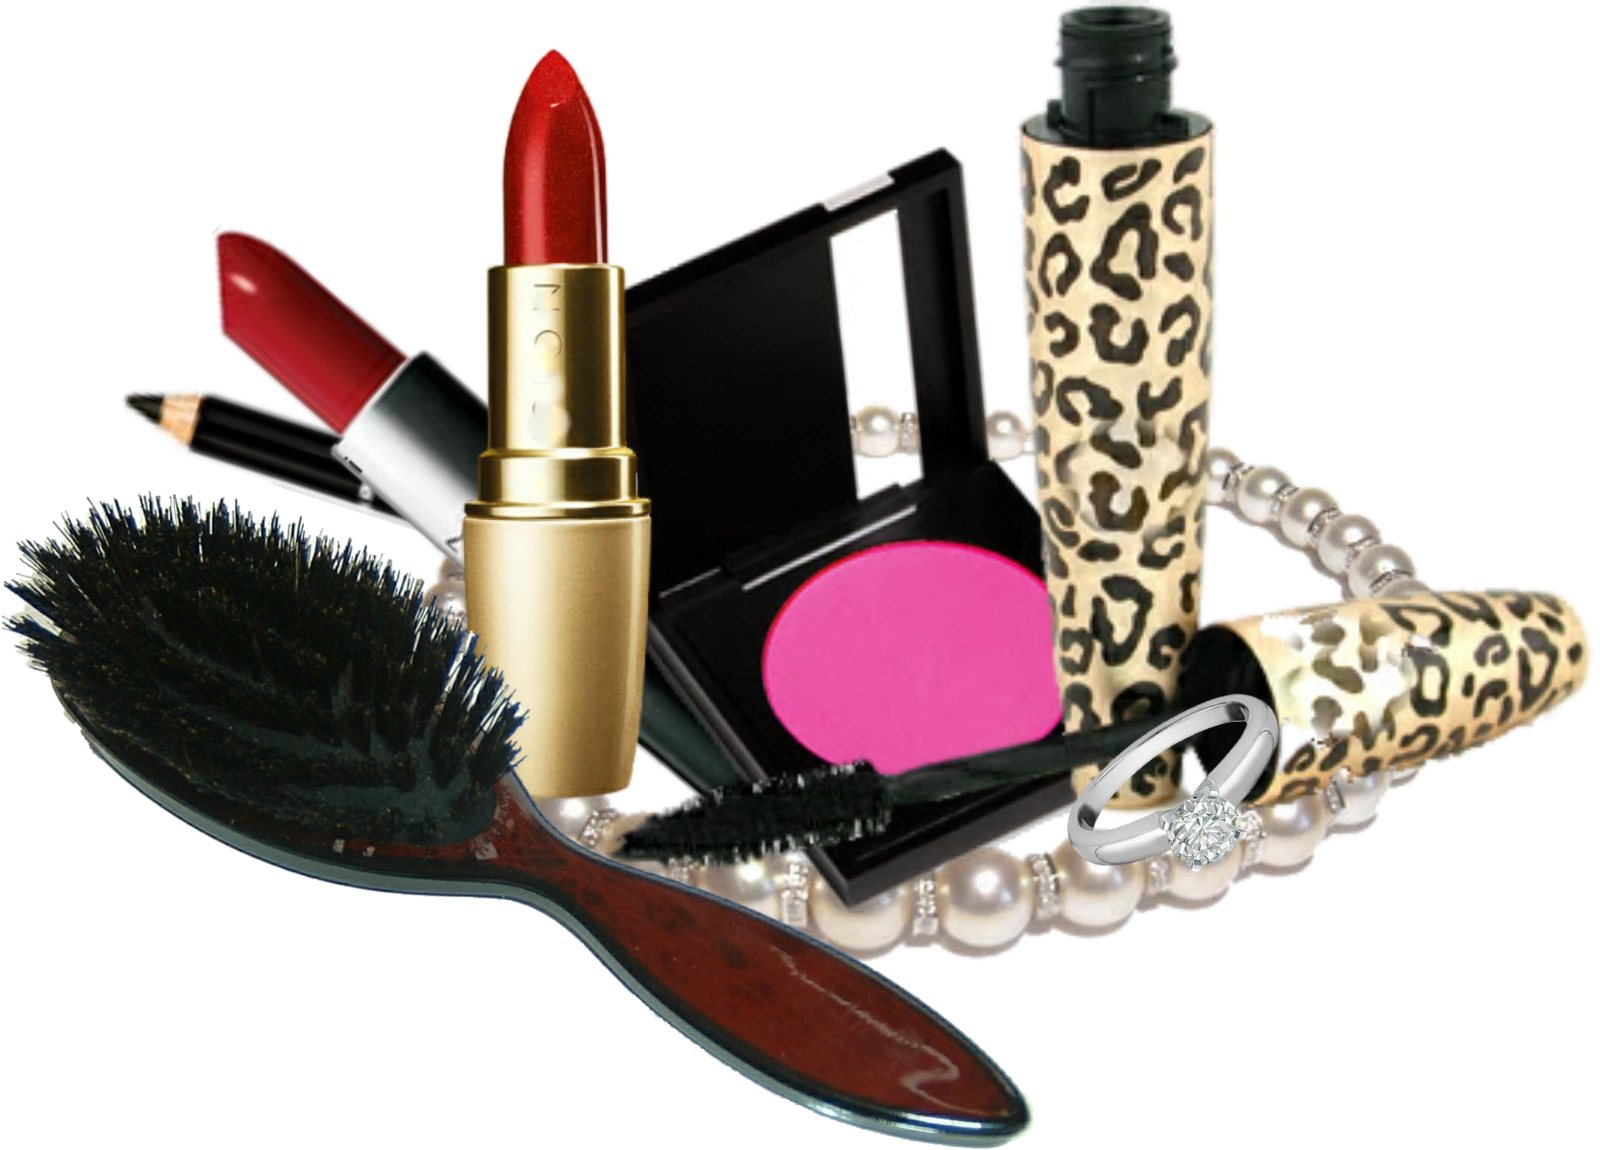 clip art royalty free stock Makeup clipart fashion makeup. Png free download mart.